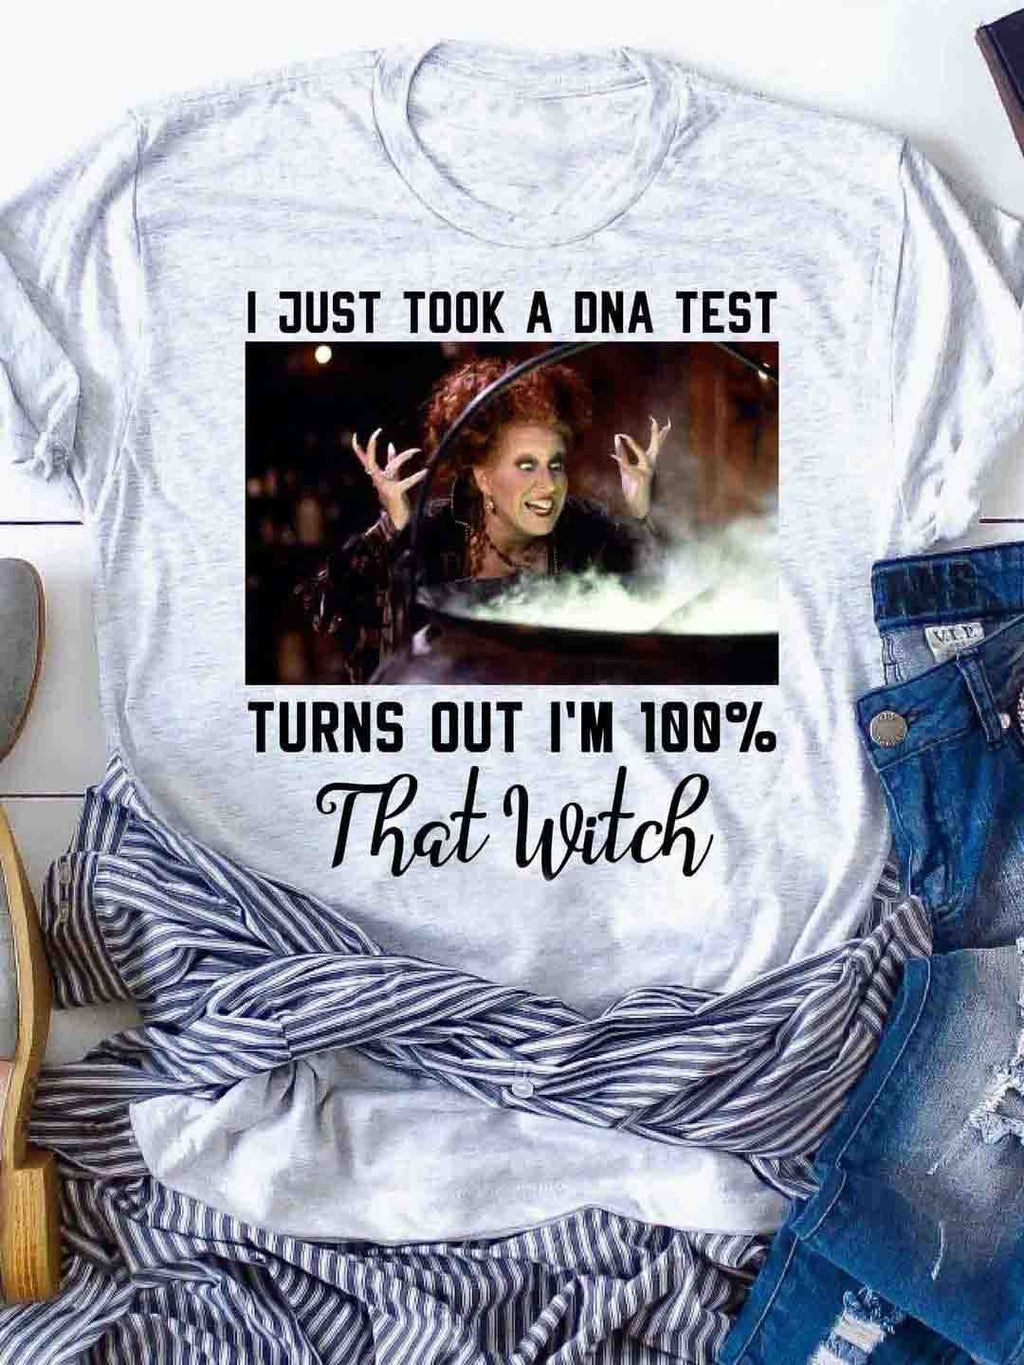 I'm 100% That With T-Shirt